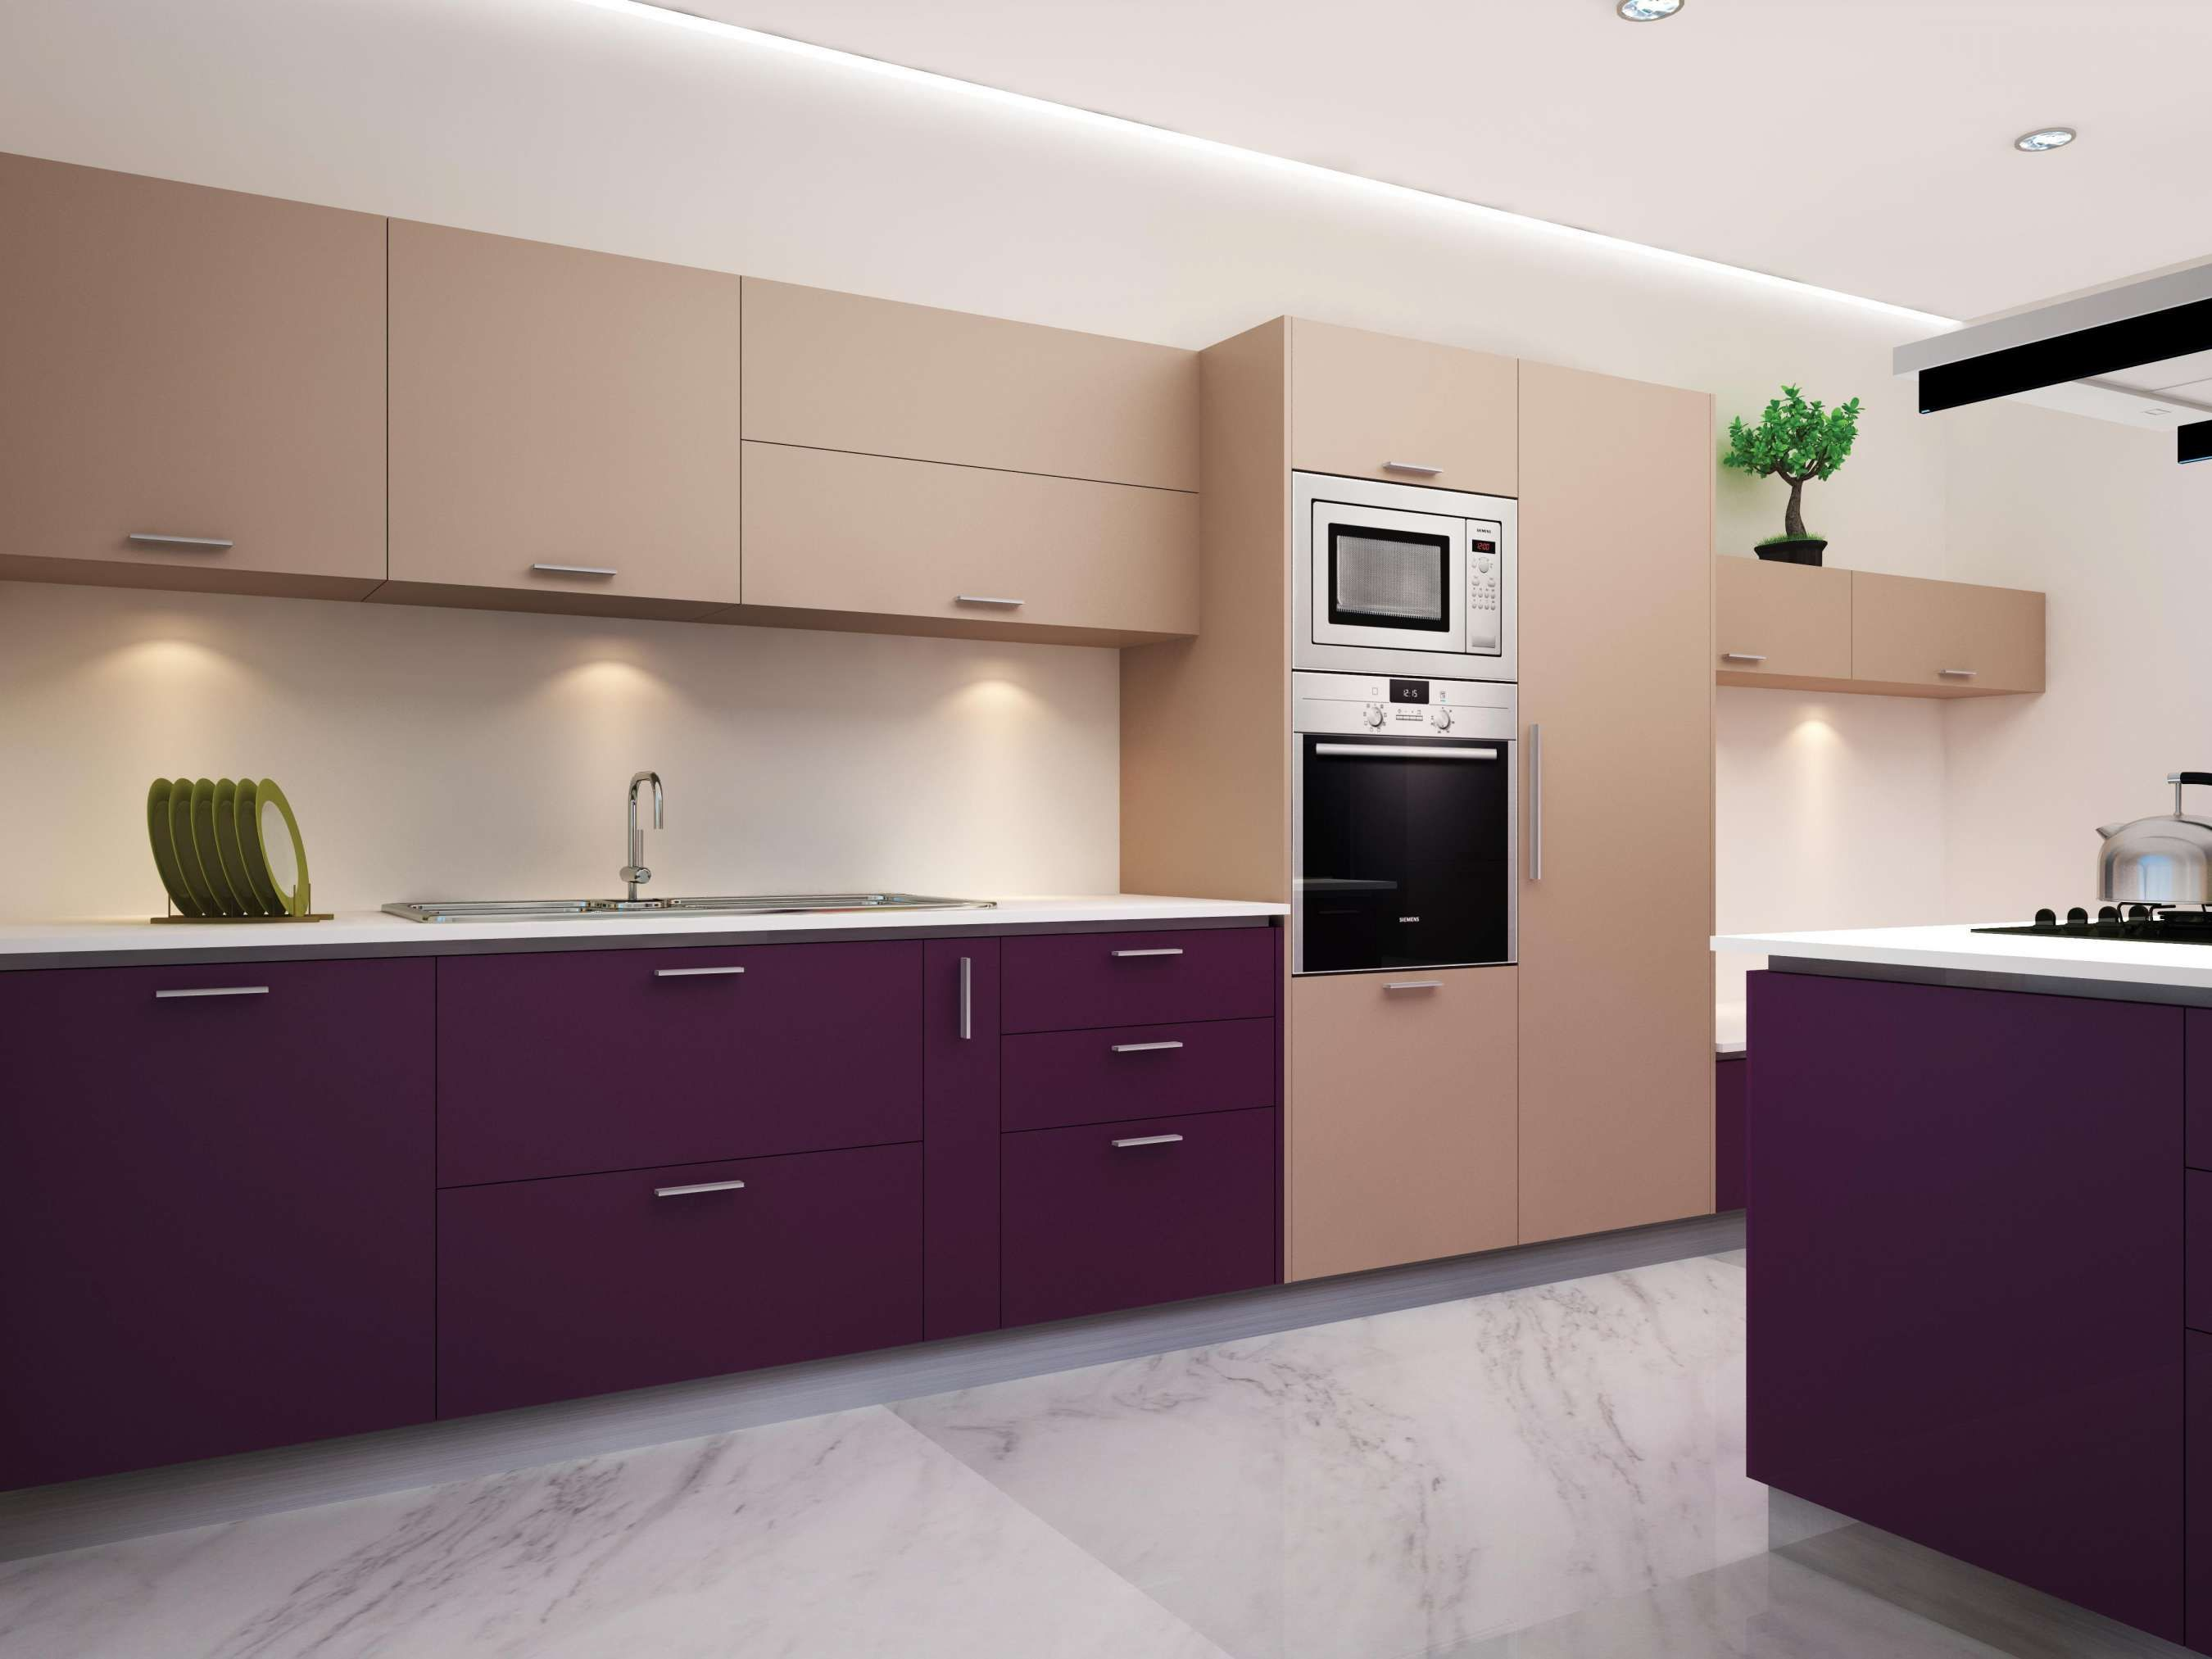 11 exceptional kitchen color combinations pictures collection kitchen color c in 2020 on kitchen cabinets color combination id=20983